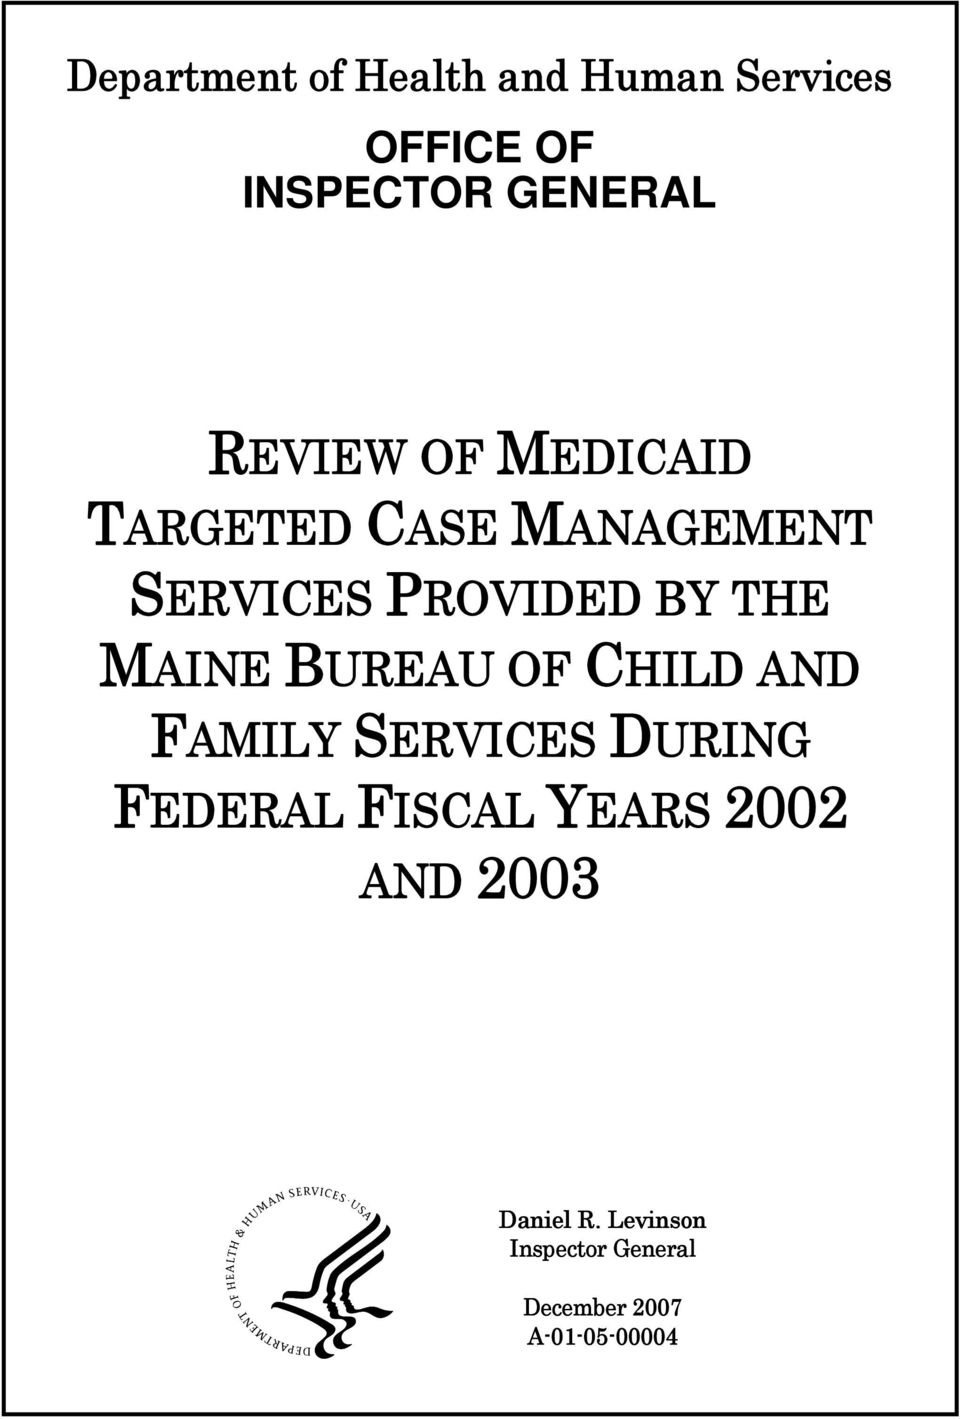 MAINE BUREAU OF CHILD AND FAMILY SERVICES DURING FEDERAL FISCAL YEARS